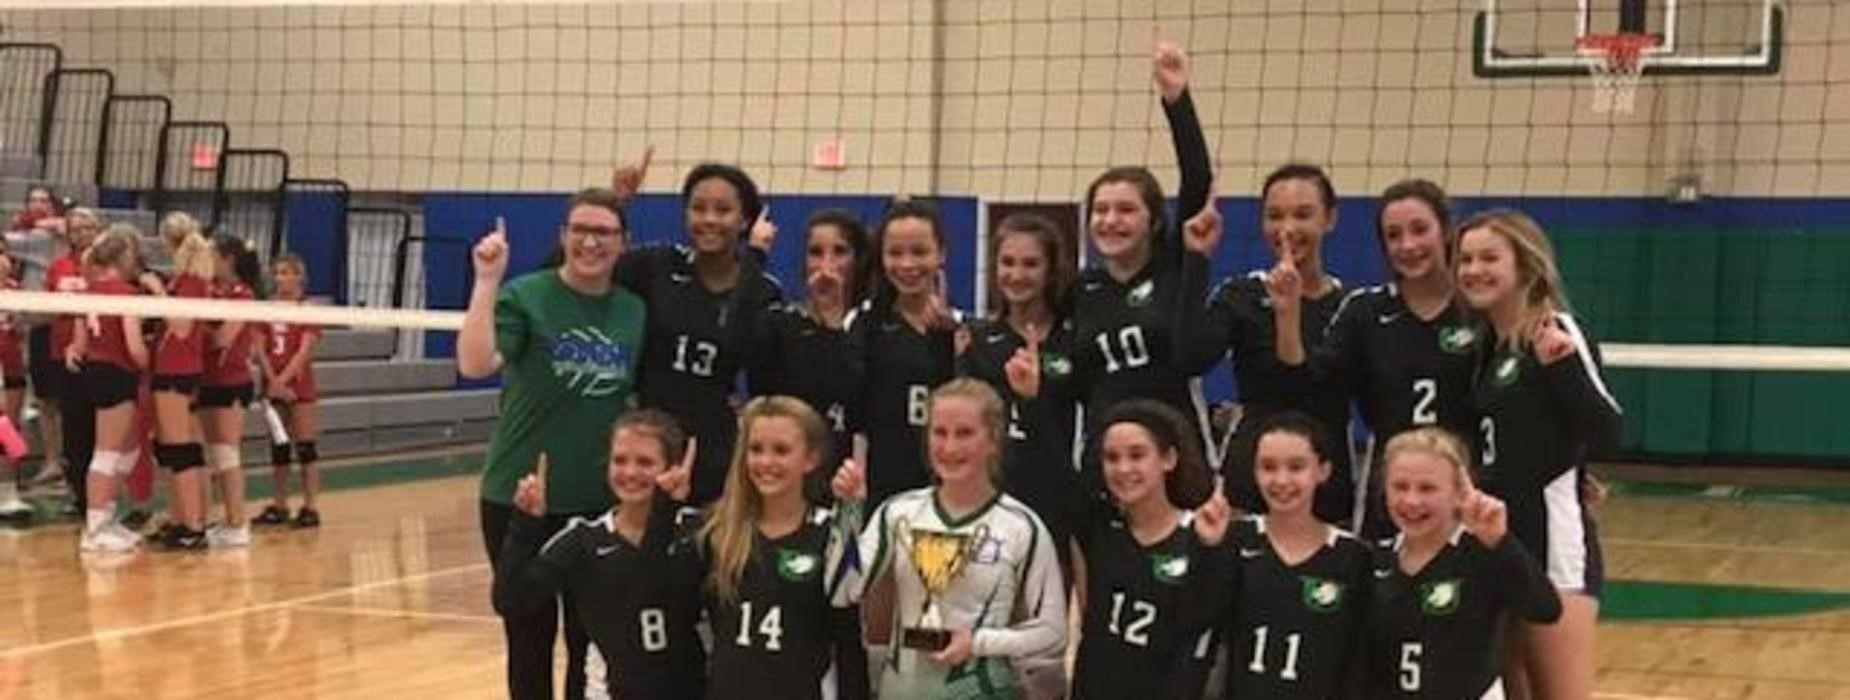 Middle School 2019 Volleyball Champions